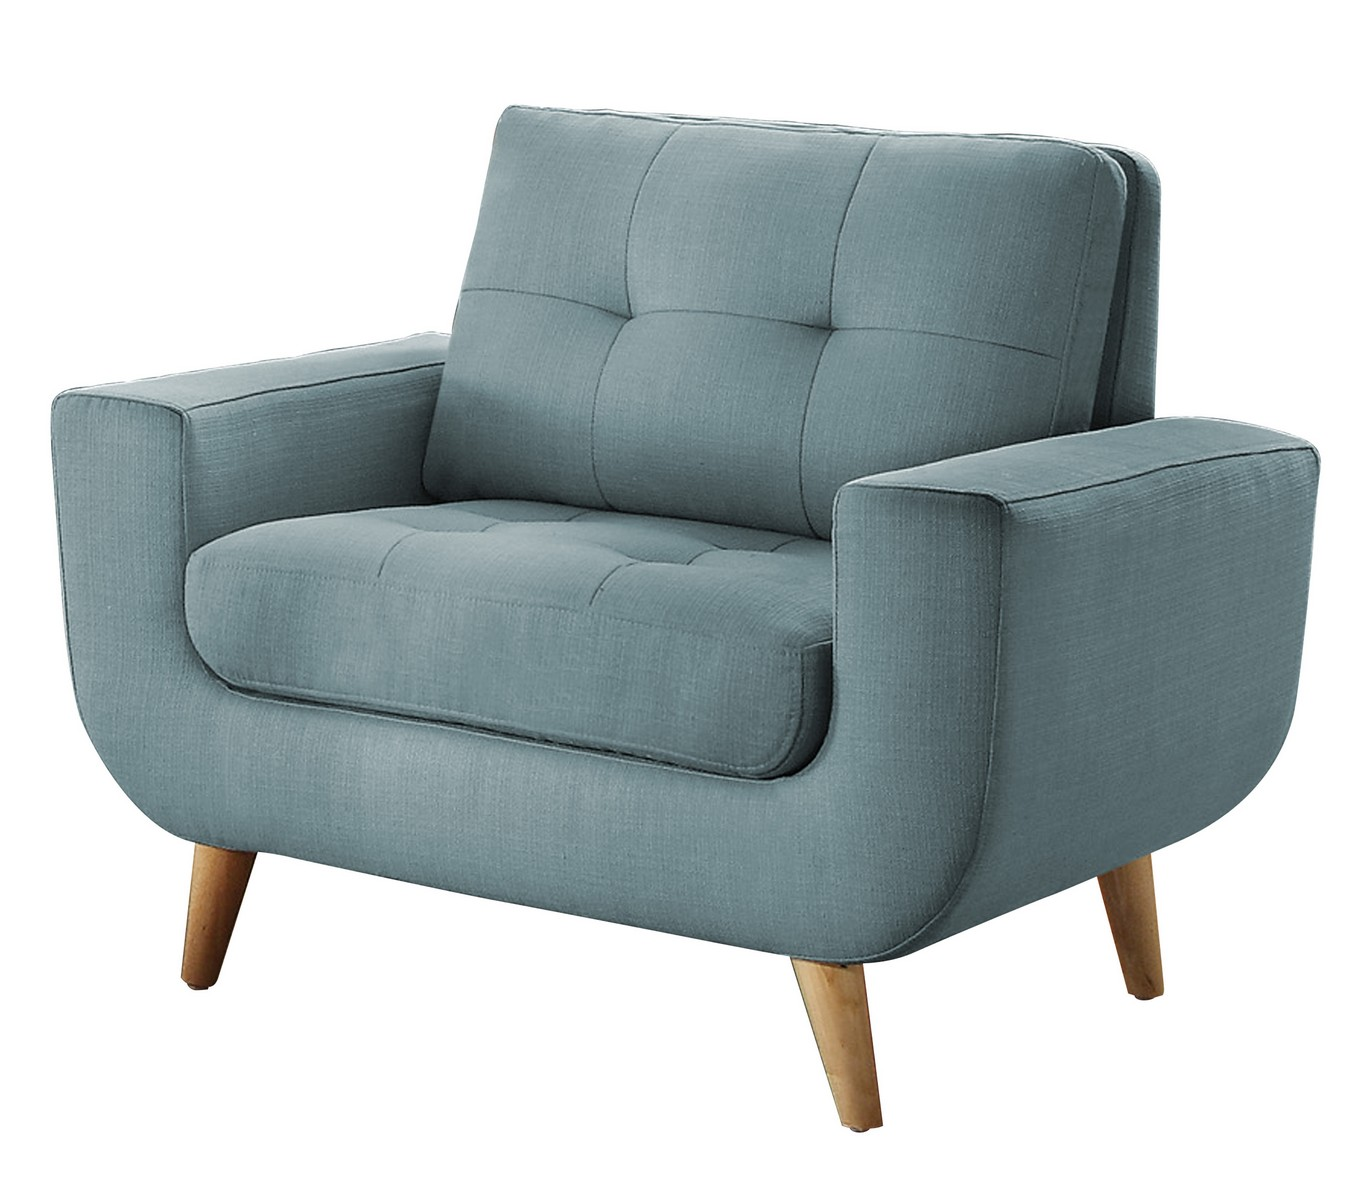 Homelegance Deryn Chair - Polyester - Teal